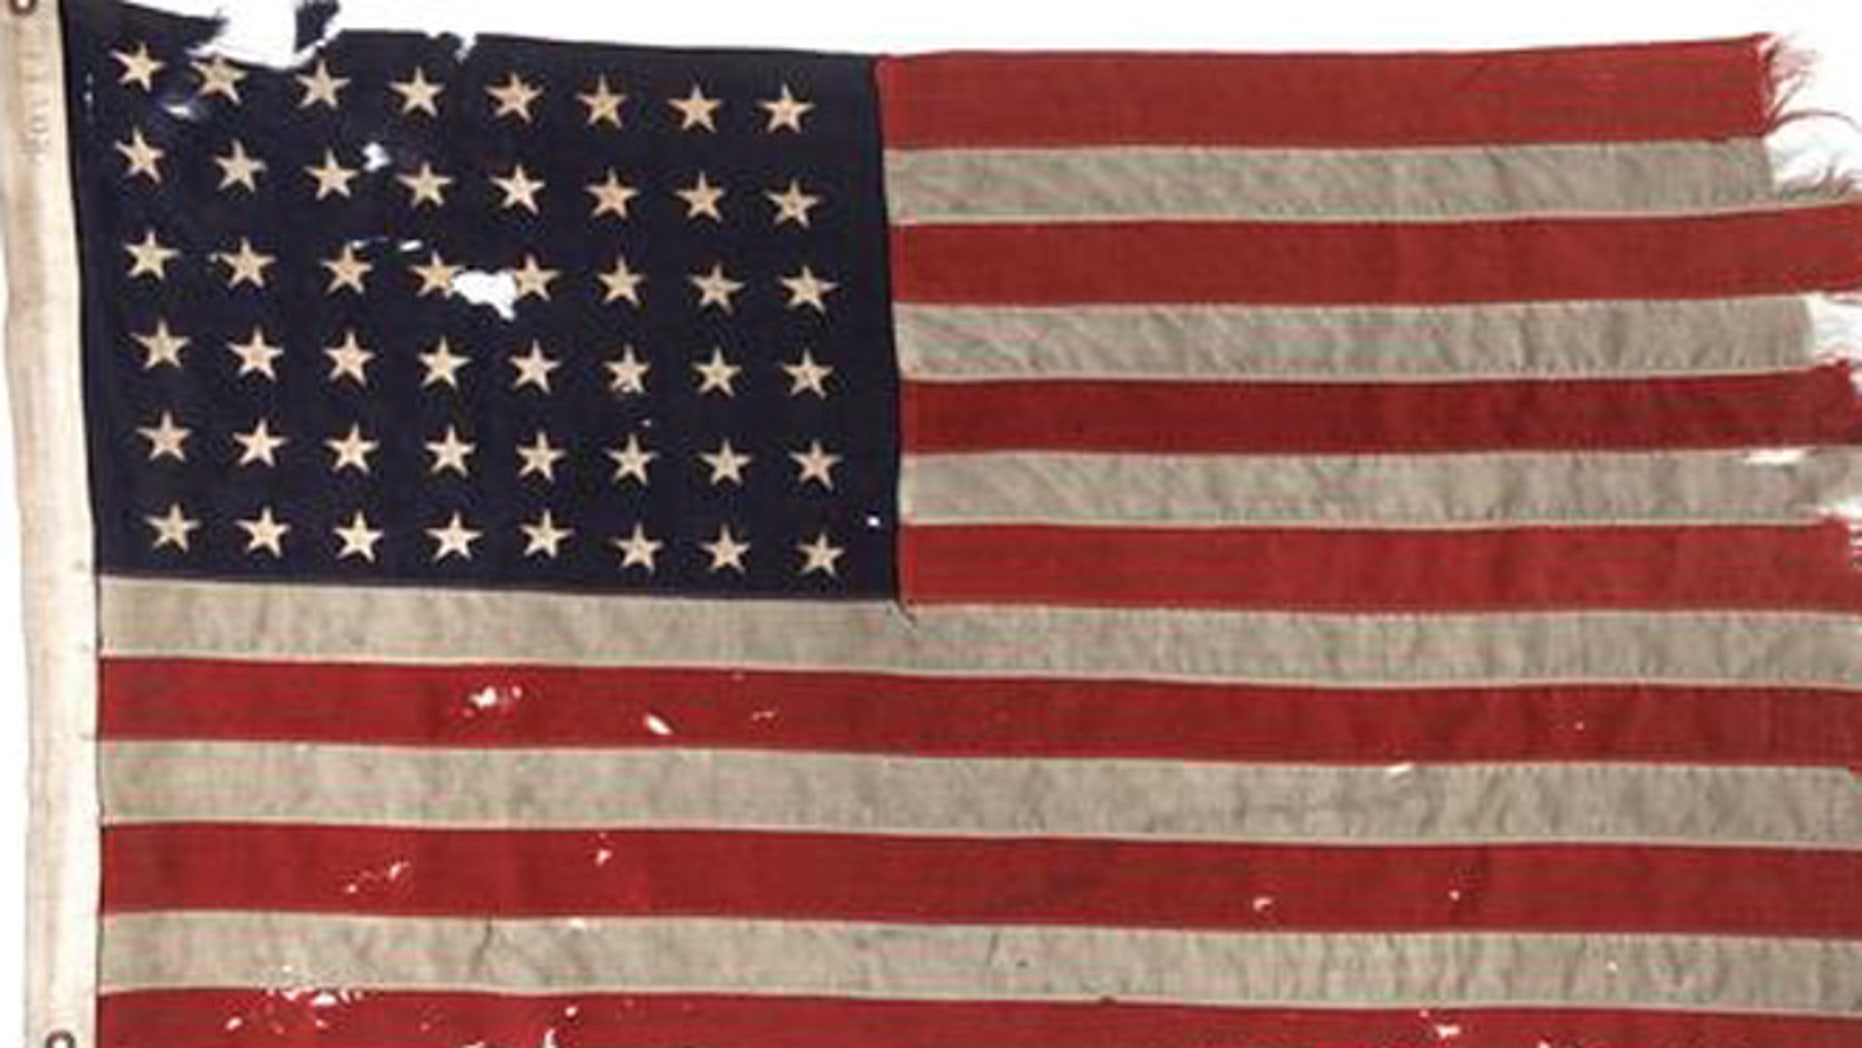 This undated photo provided by Heritage Auctions shows a U.S. flag flown on the stern of the boat that led the first American troops onto Utah Beach on D-Day.